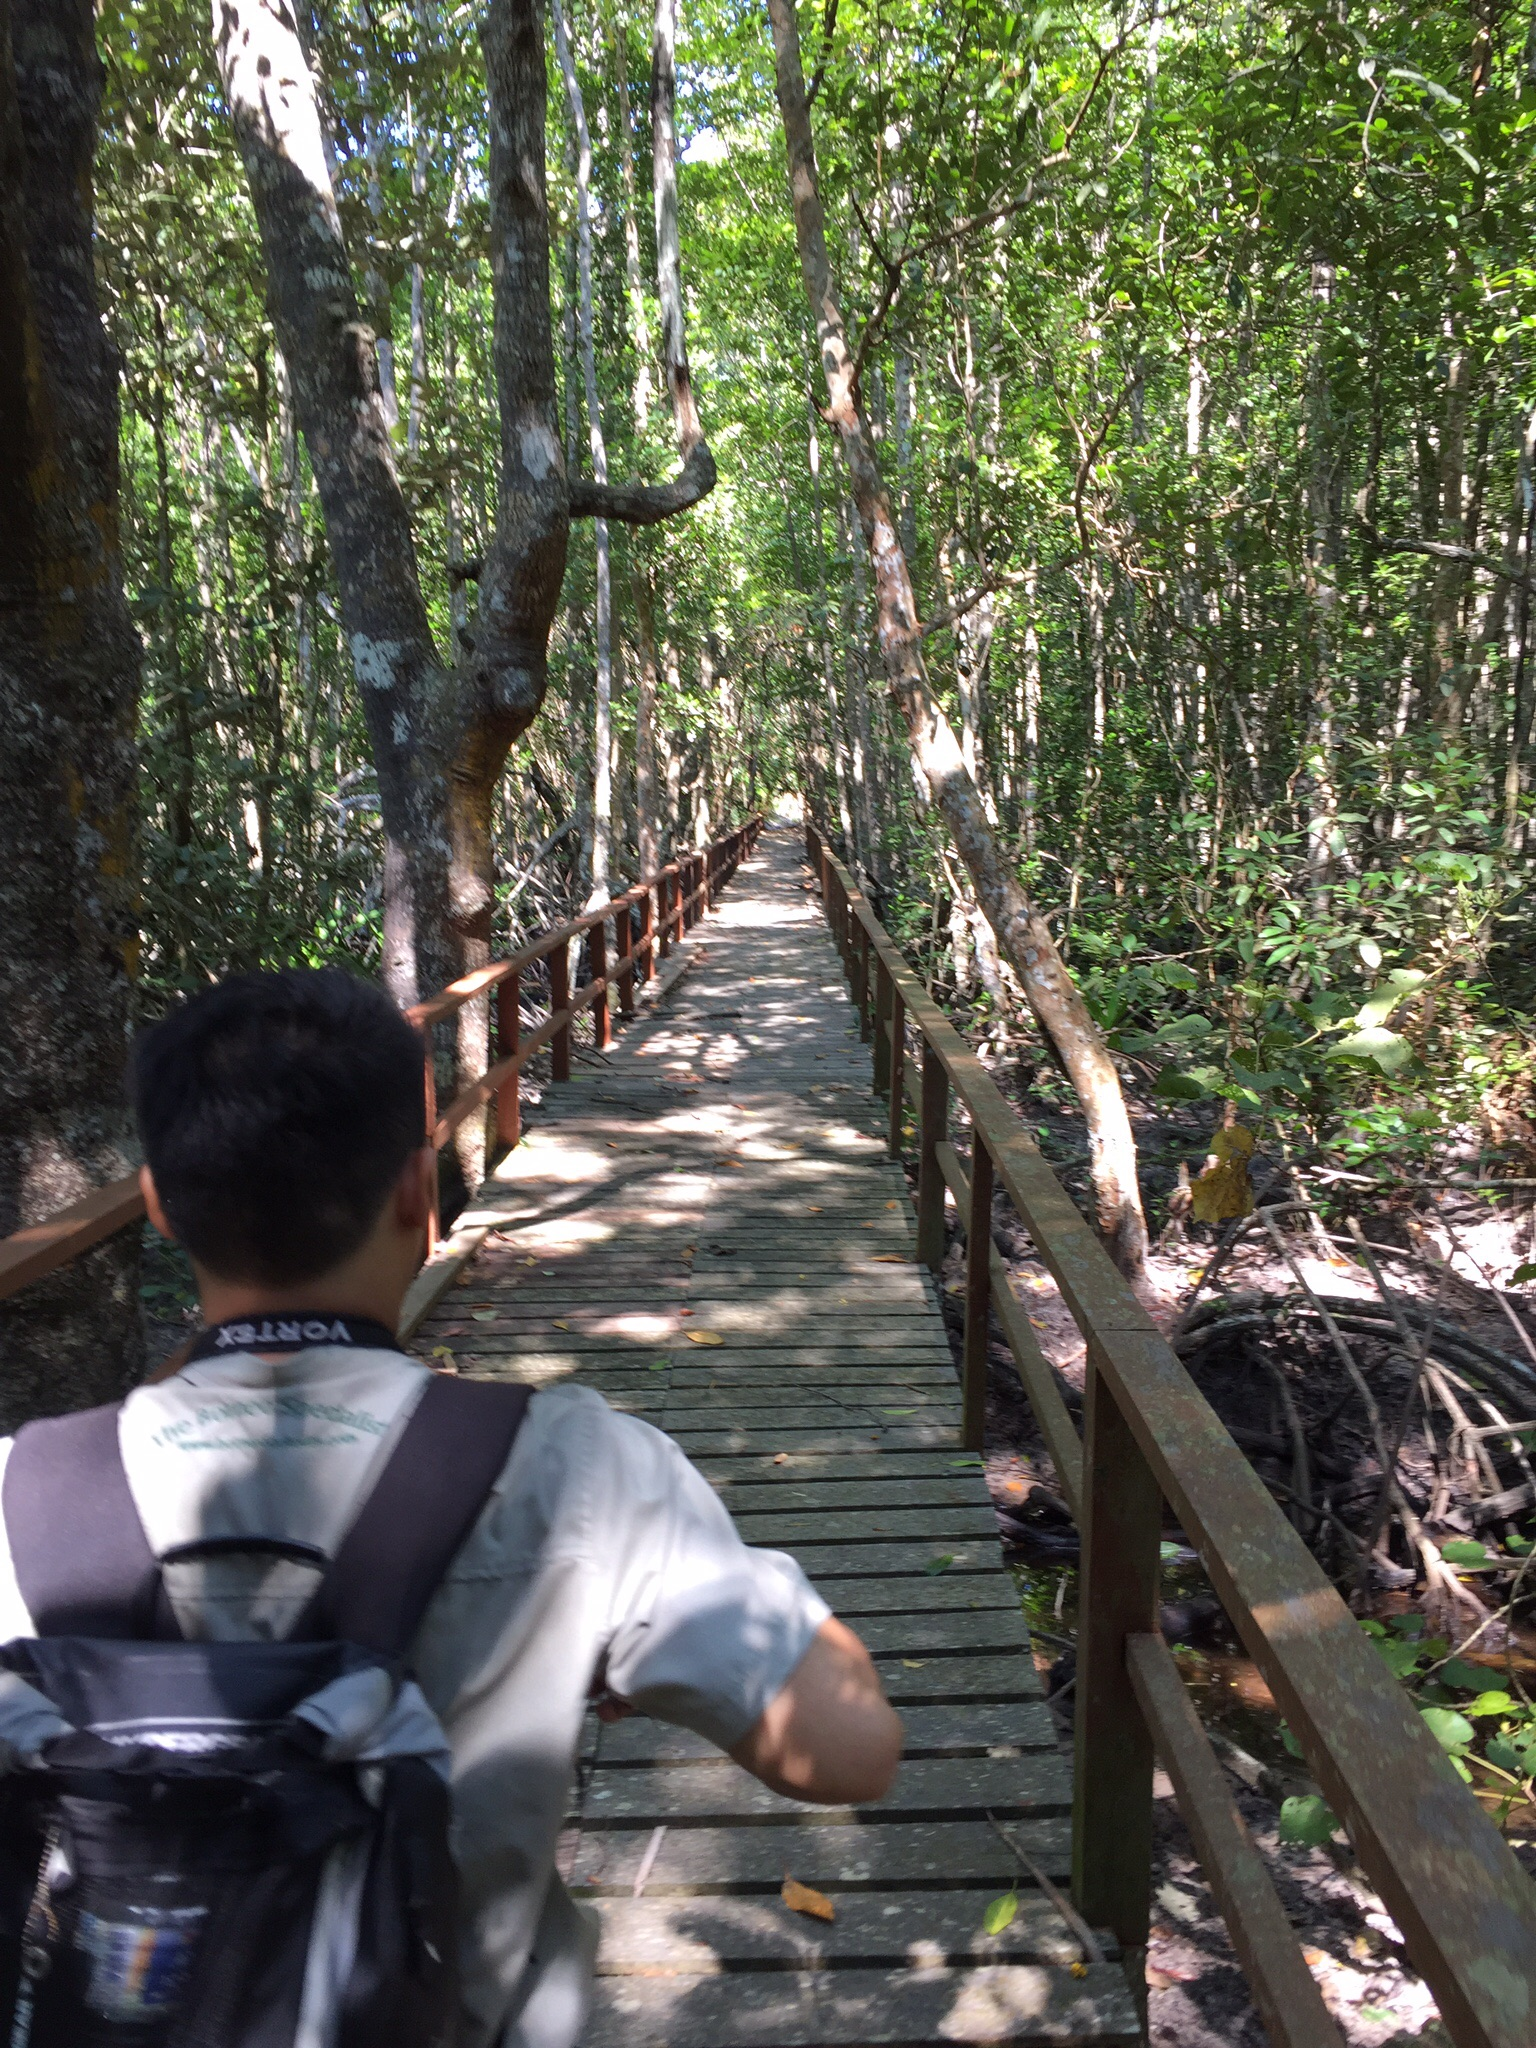 Felix and the mangrove forests. Rude of me to only have a picture of him from behind. Sorry Felix.